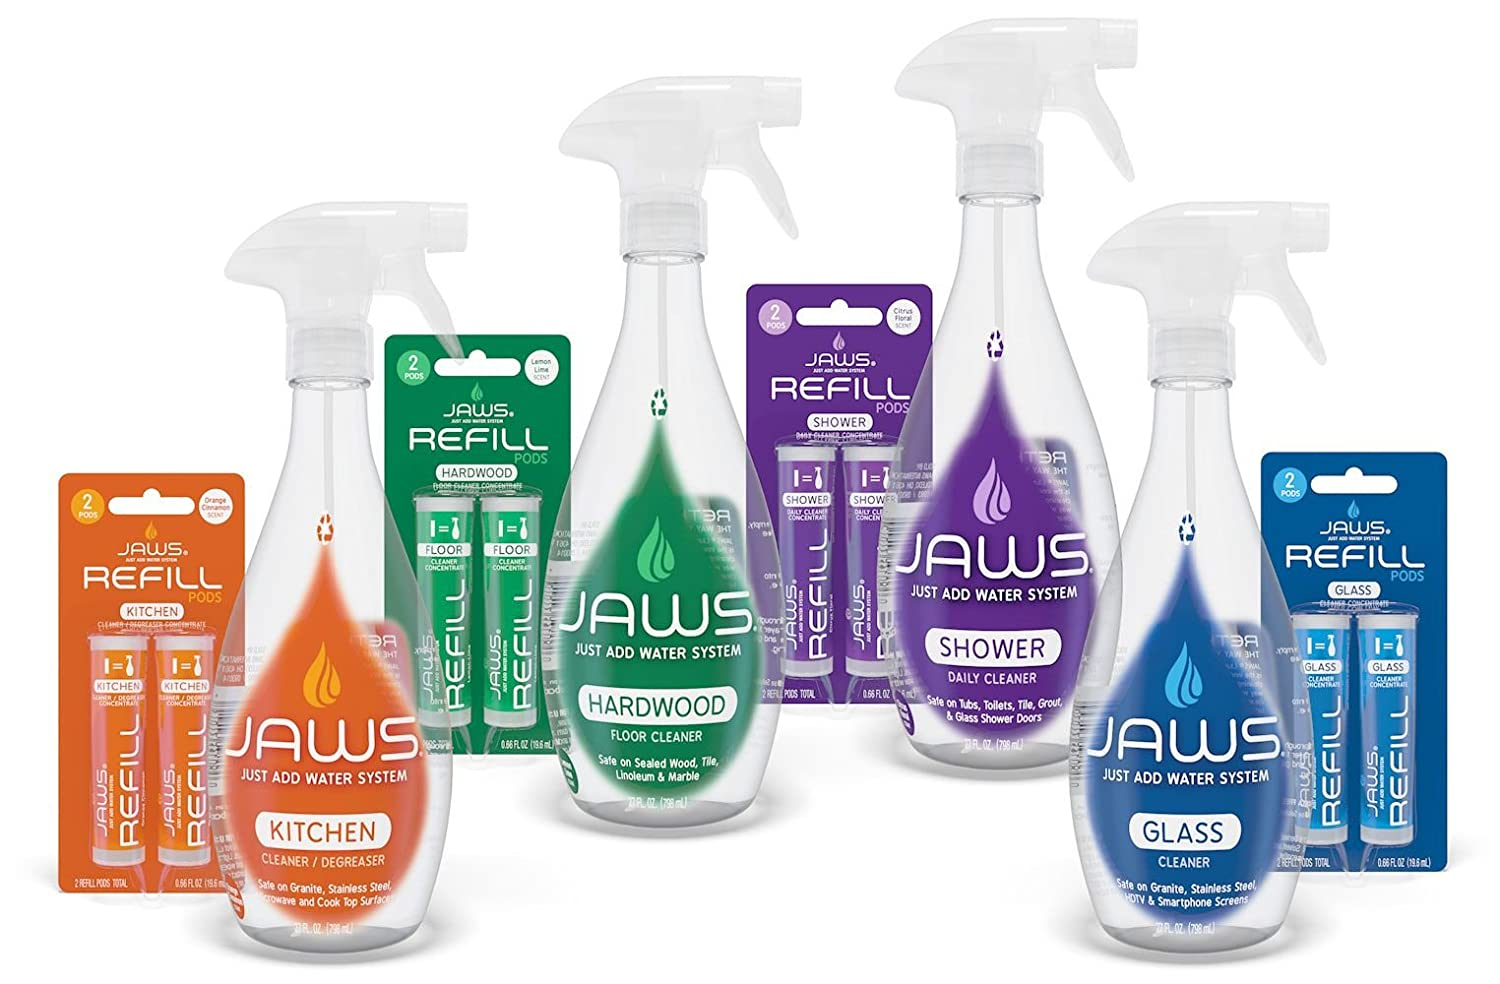 JAWS Home Cleaning Kit | Kitchen, Glass, Shower and Hardwood | 2 Refill  Pods of Each Included. Non-Toxic and Eco-Friendly Cleaning Products. Refill  ...